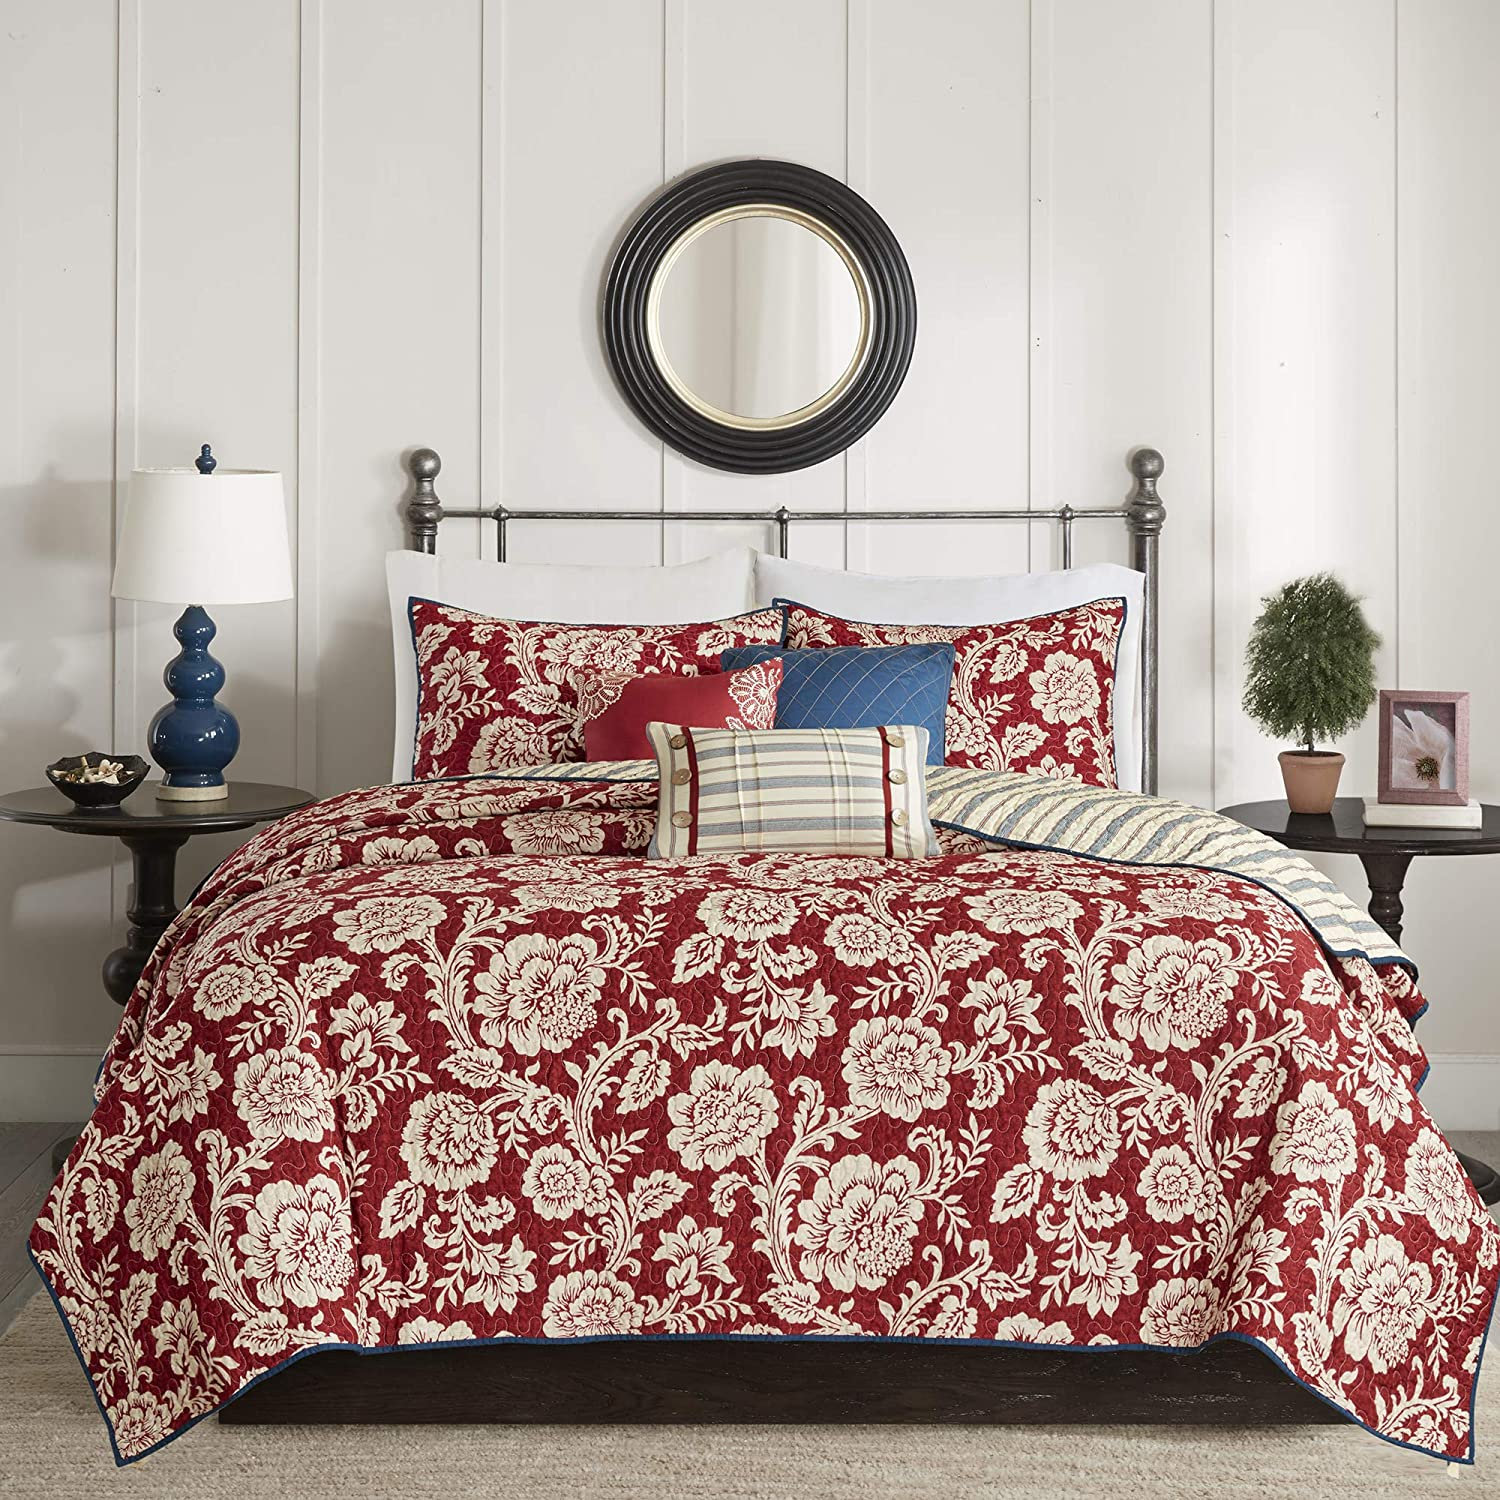 Madison Park 100% Cotton Set Floral Print, Double Sided Quilting All Season, Lightweight Coverlet Bedspread Bedding, Matching Shams, King/Cal King, Lucy, Red 6 Piece